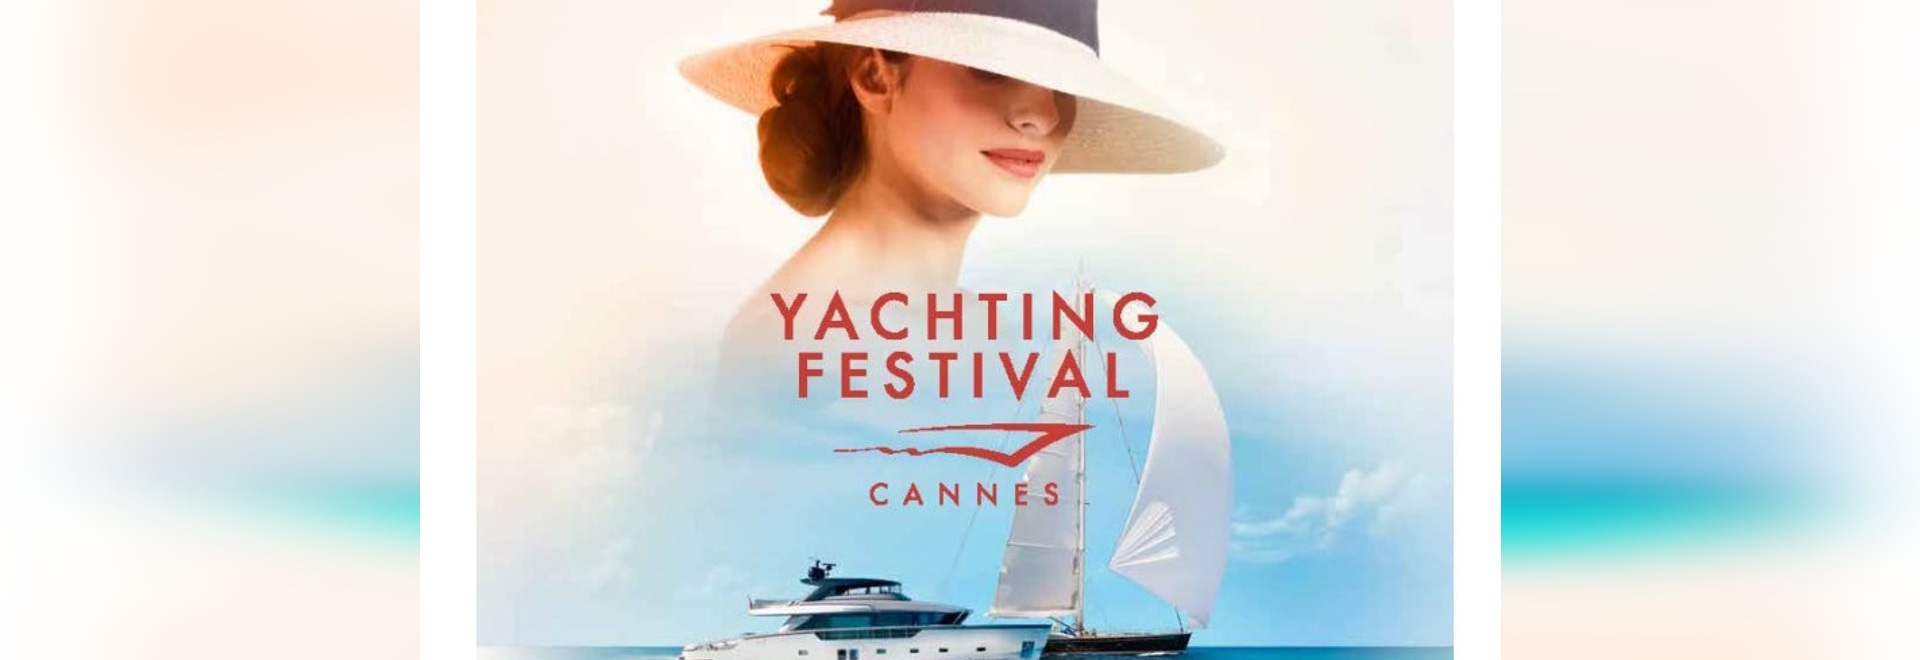 Cannes Yachting Festival Is On